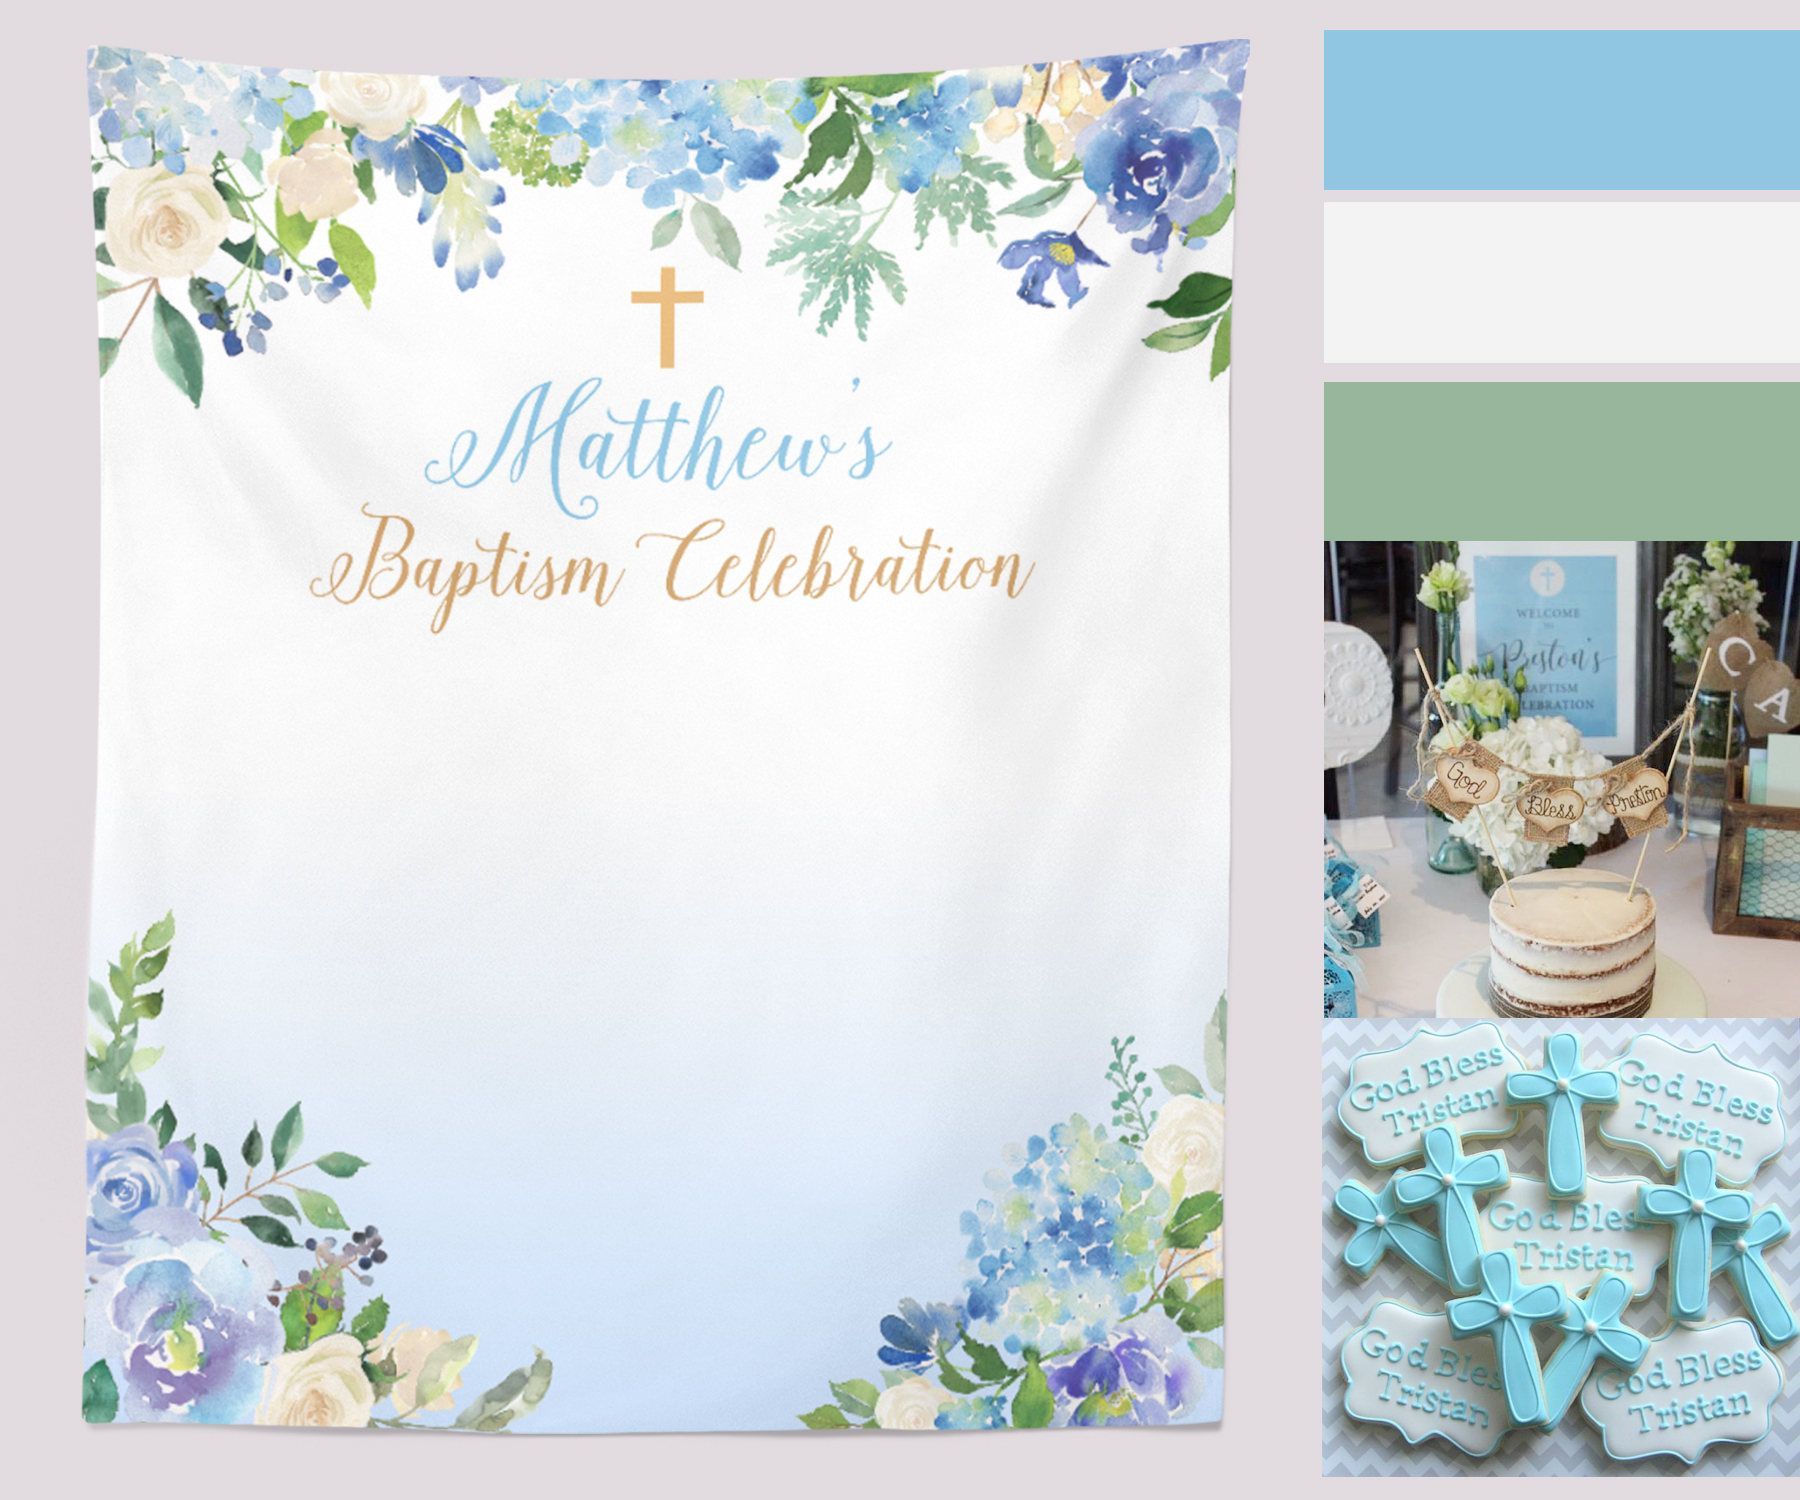 Photo booth ideas for baptism #2